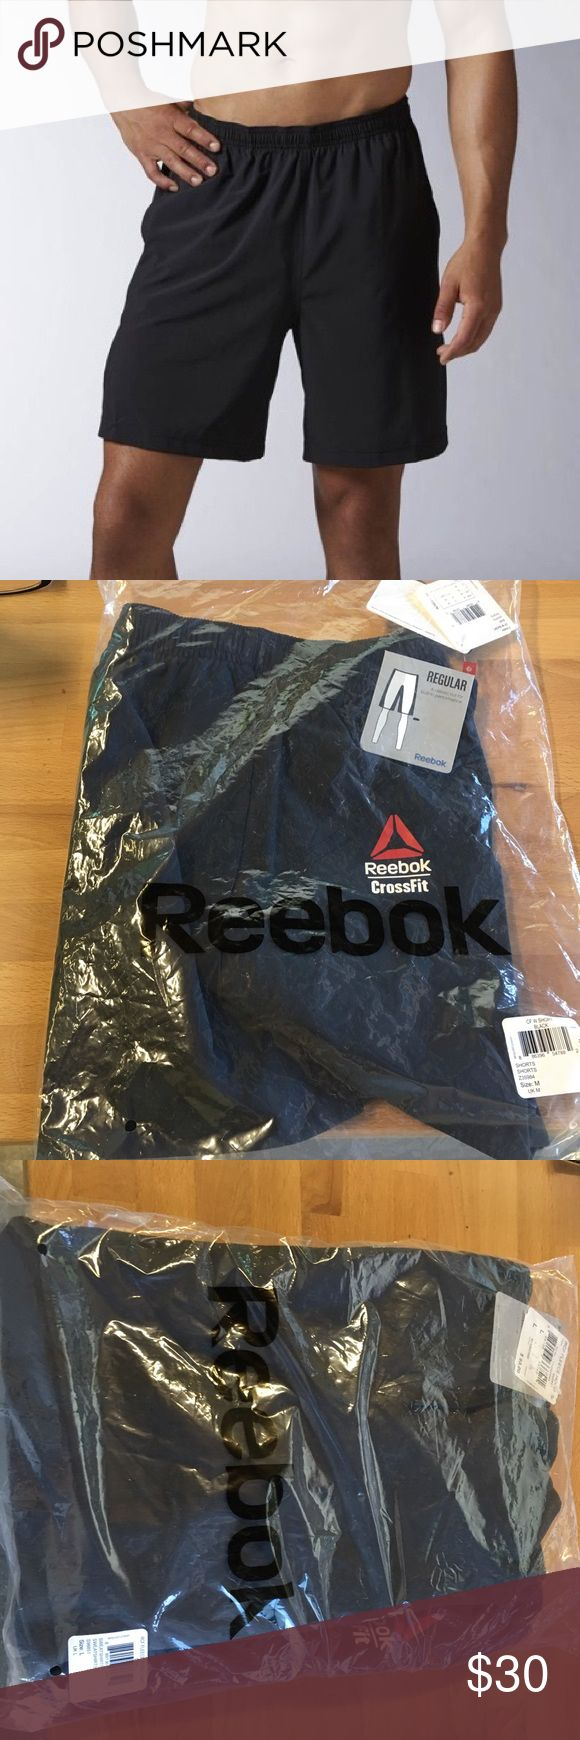 Men's Reebok CrossFit Austin 2 Short Available in M and L. New with tags! Reebok Shorts Athletic